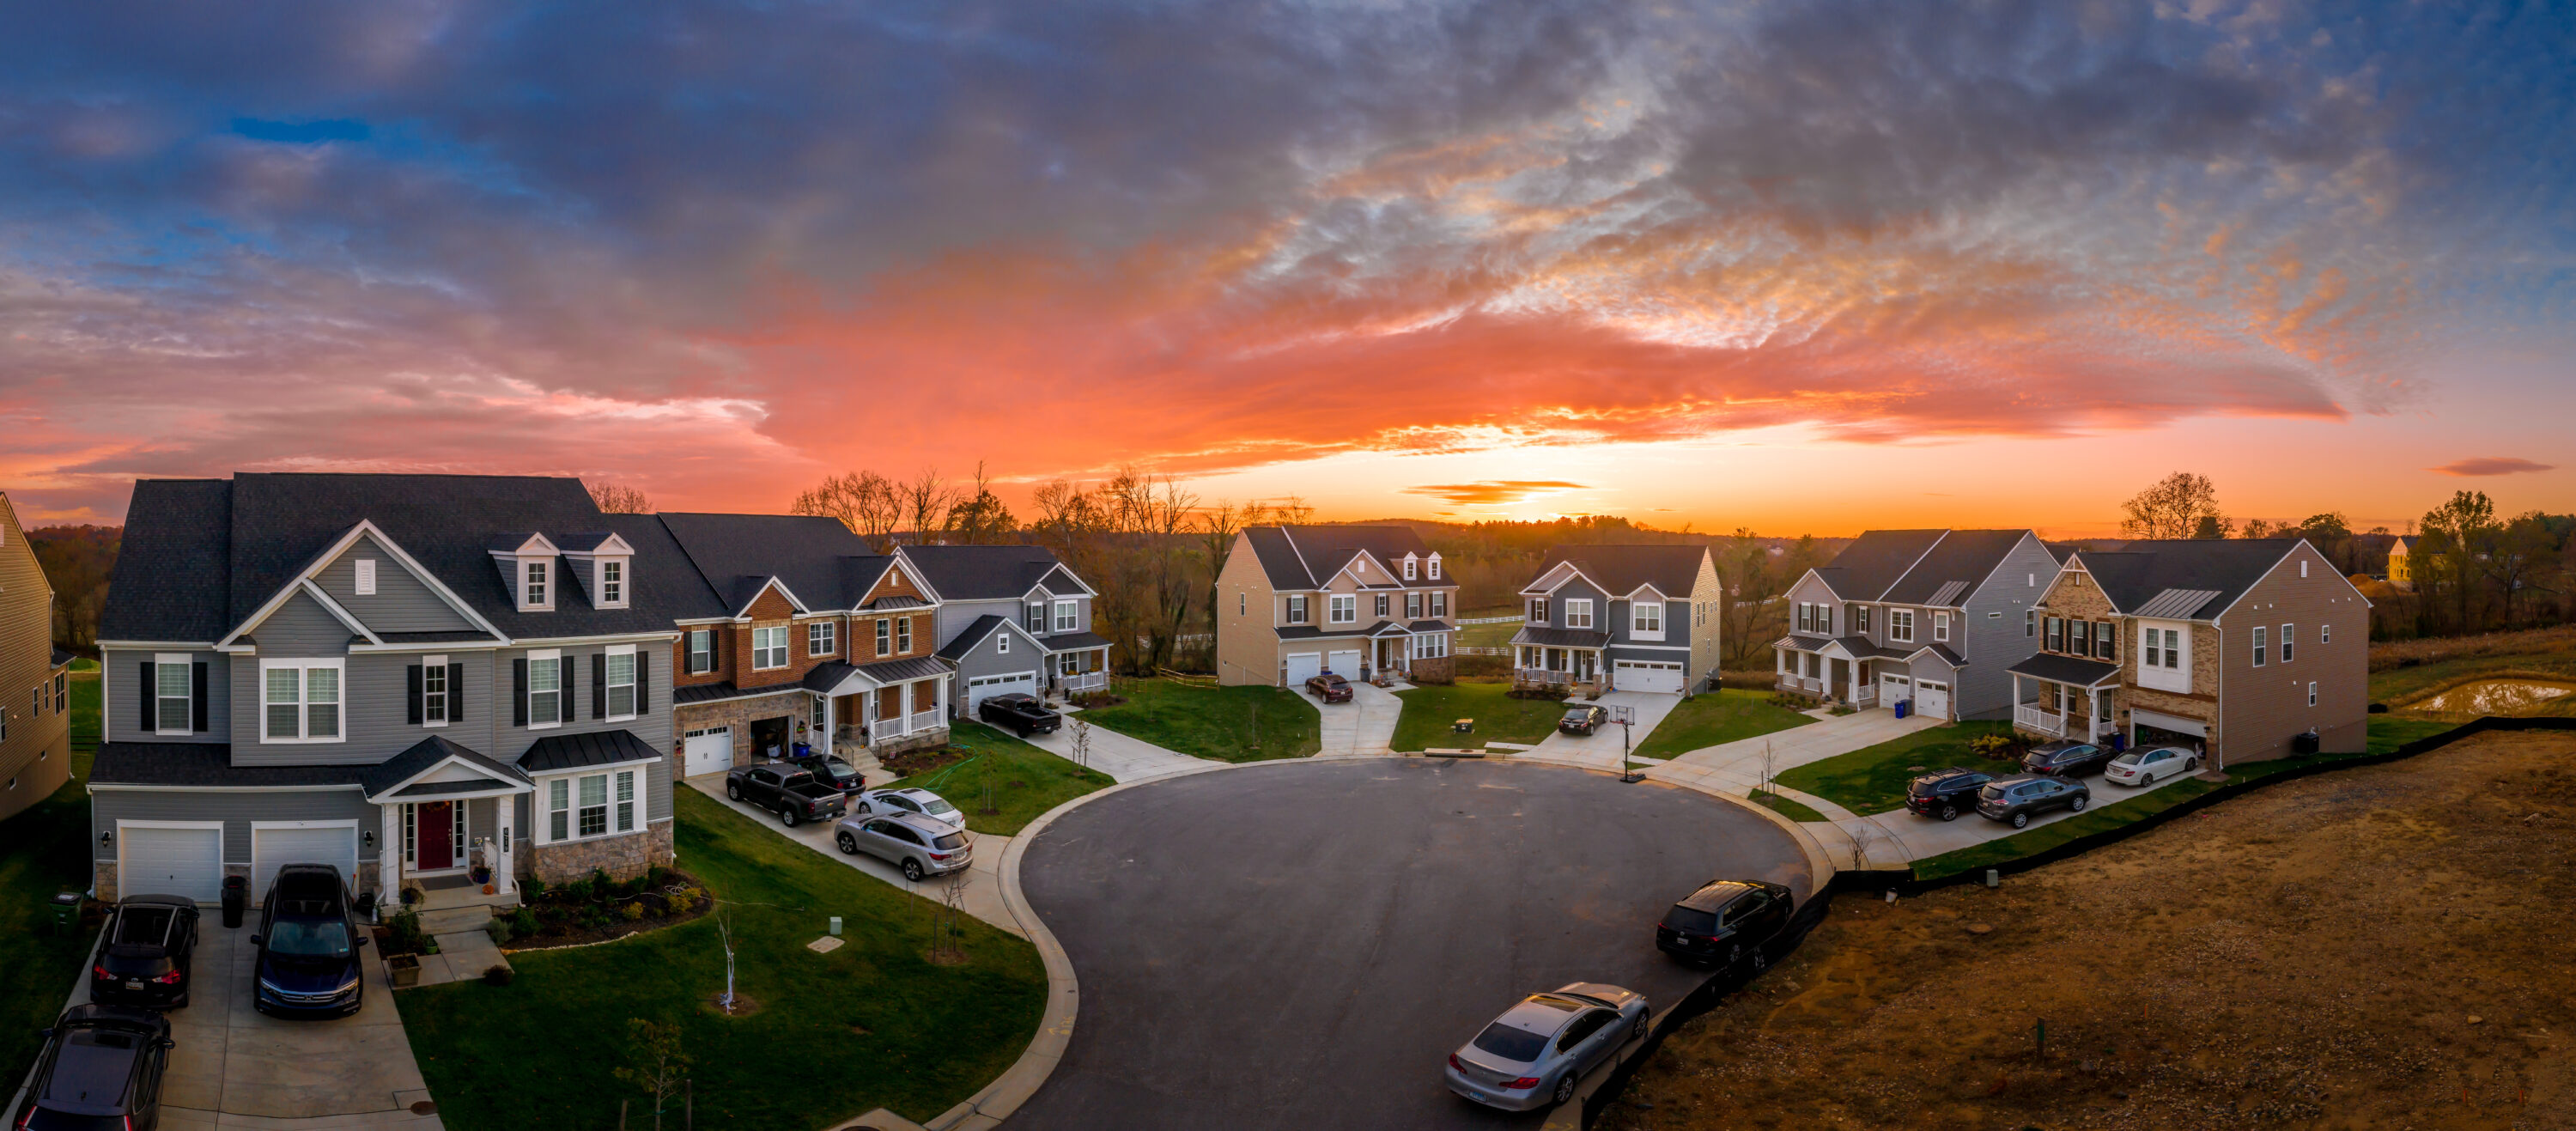 Overhead neighborhood picture of houses at sunset.